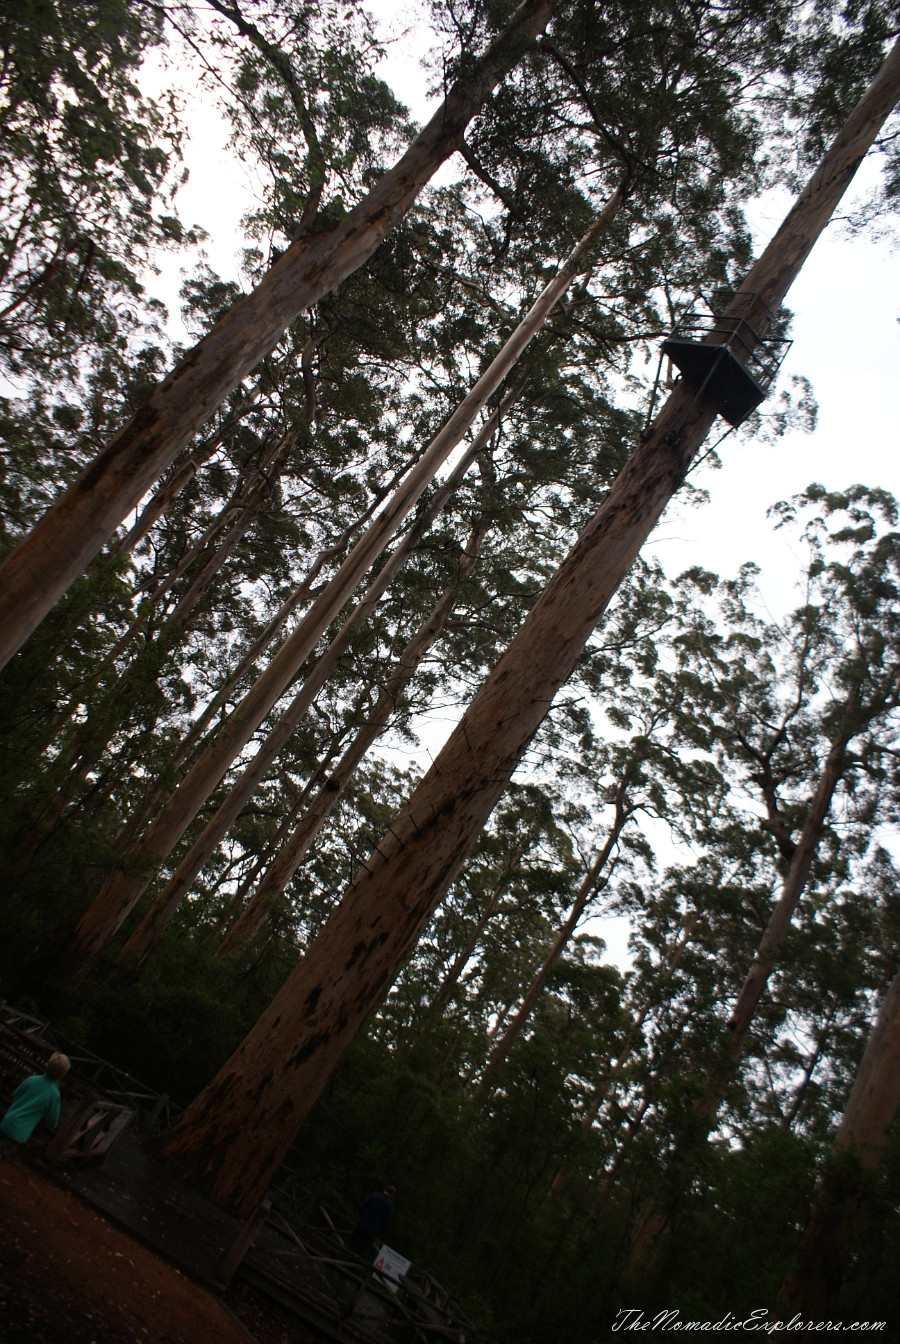 Australia, Western Australia, South West, Western Australia Trip. Day 7. Tall Timber Country / The Karri Forests Region, ,